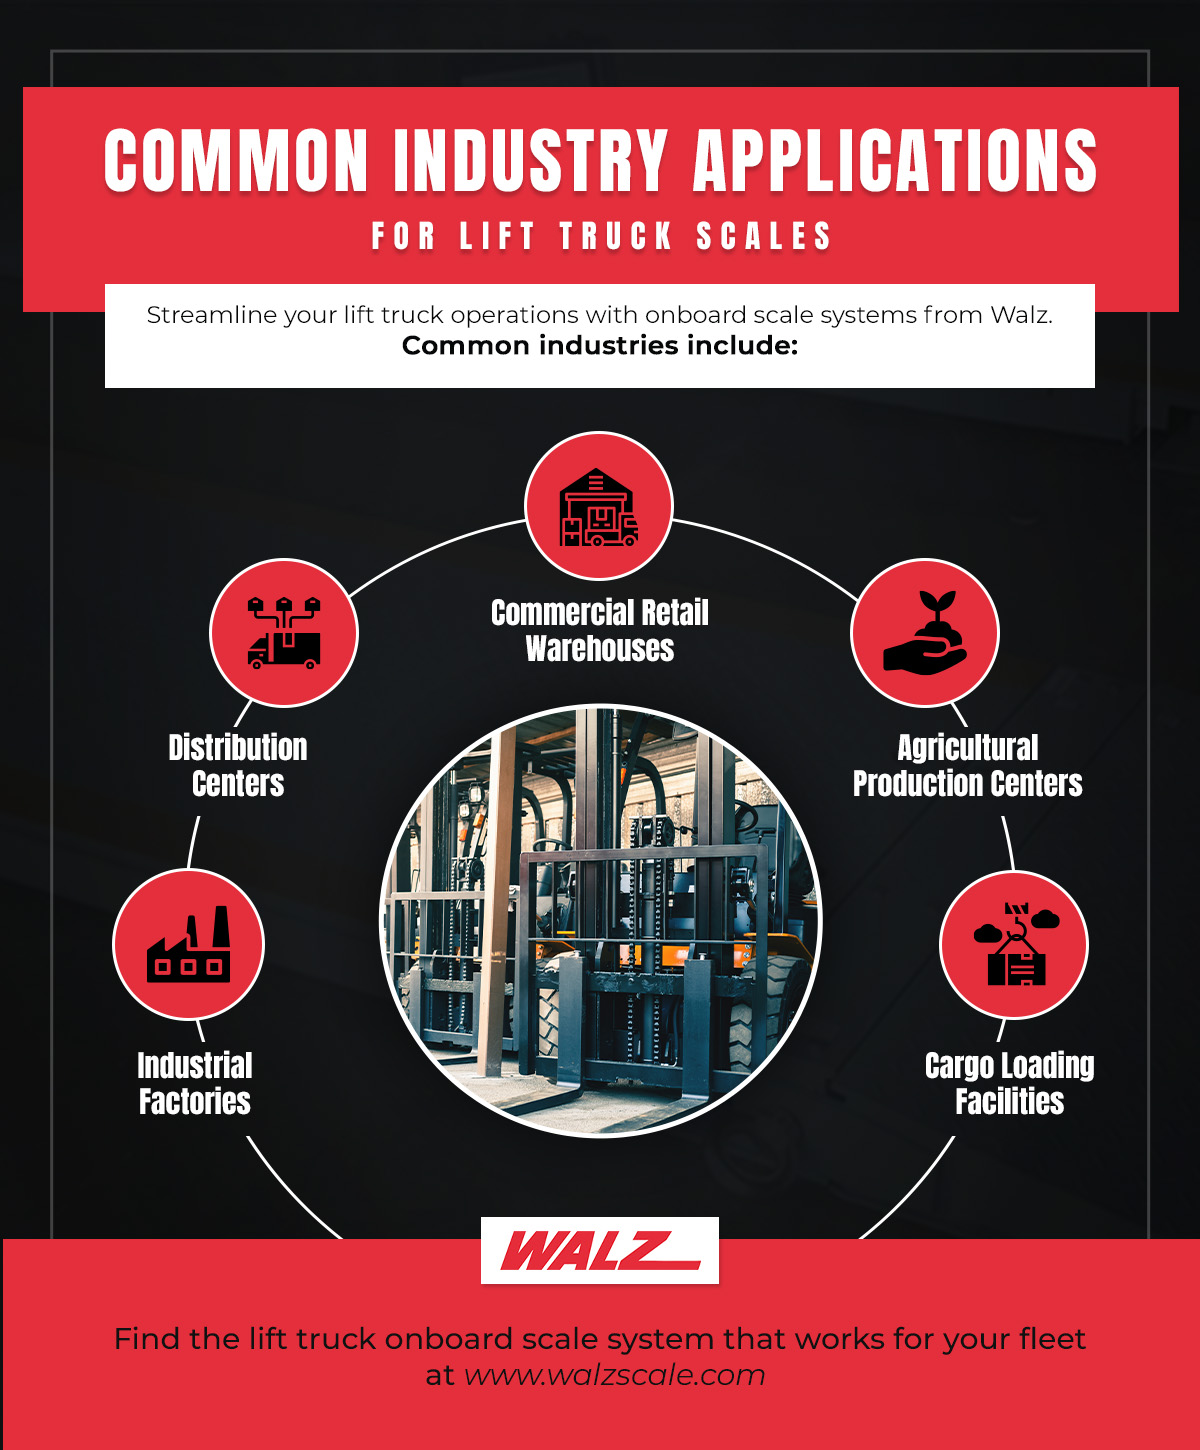 RV-2021-04-19_Common Industry Applications for Lift Truck Drivers